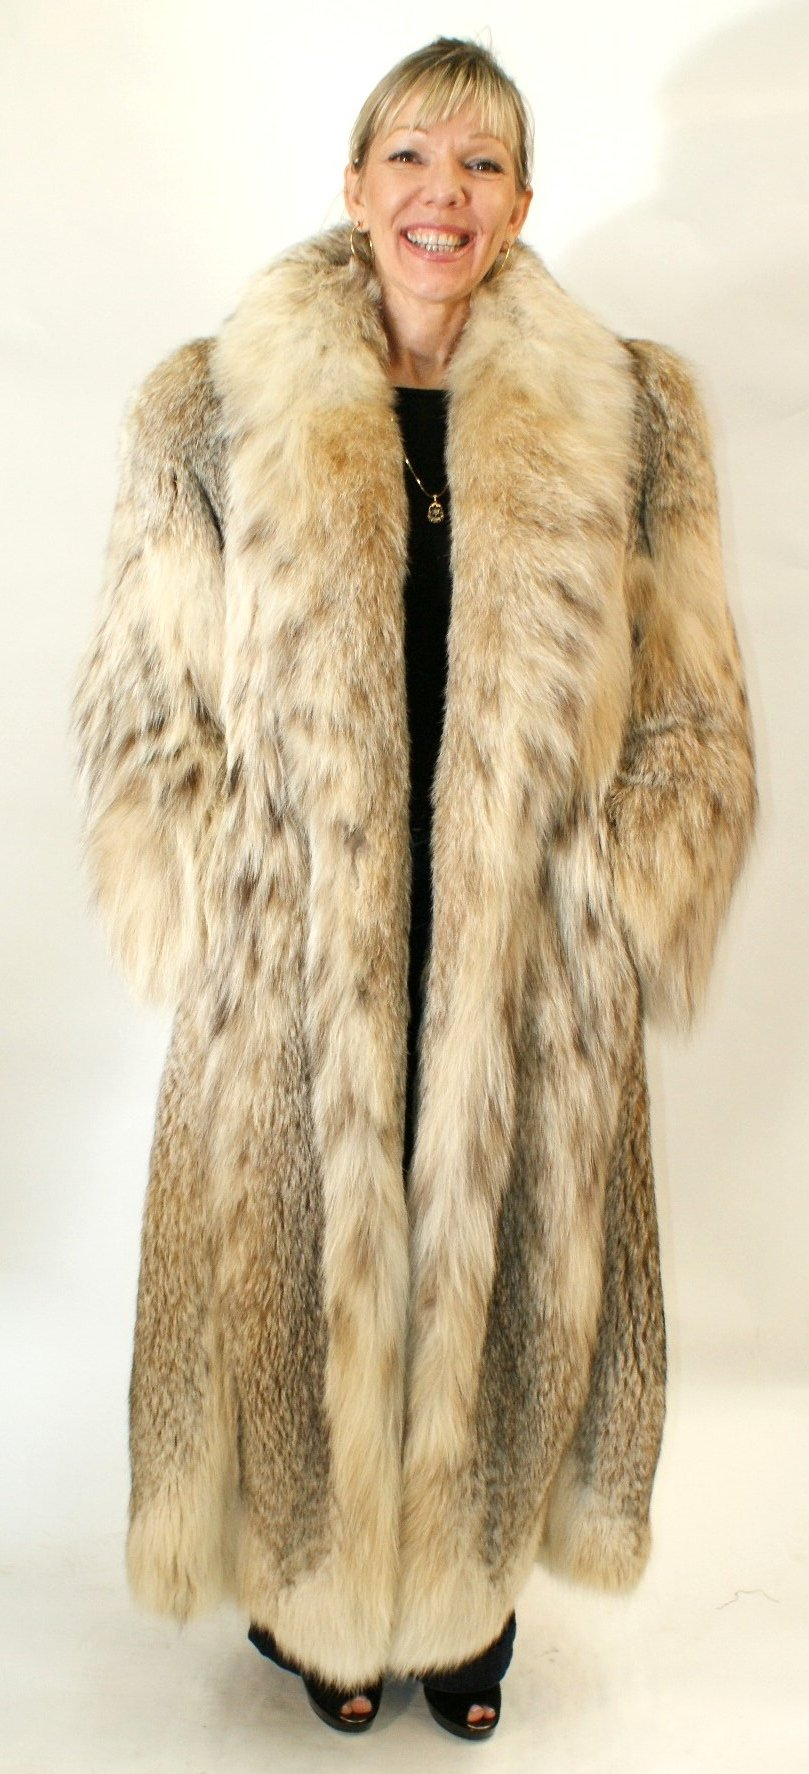 Wolverine furs furs luxury outerwear accessories fur for Stor fur gartenteich